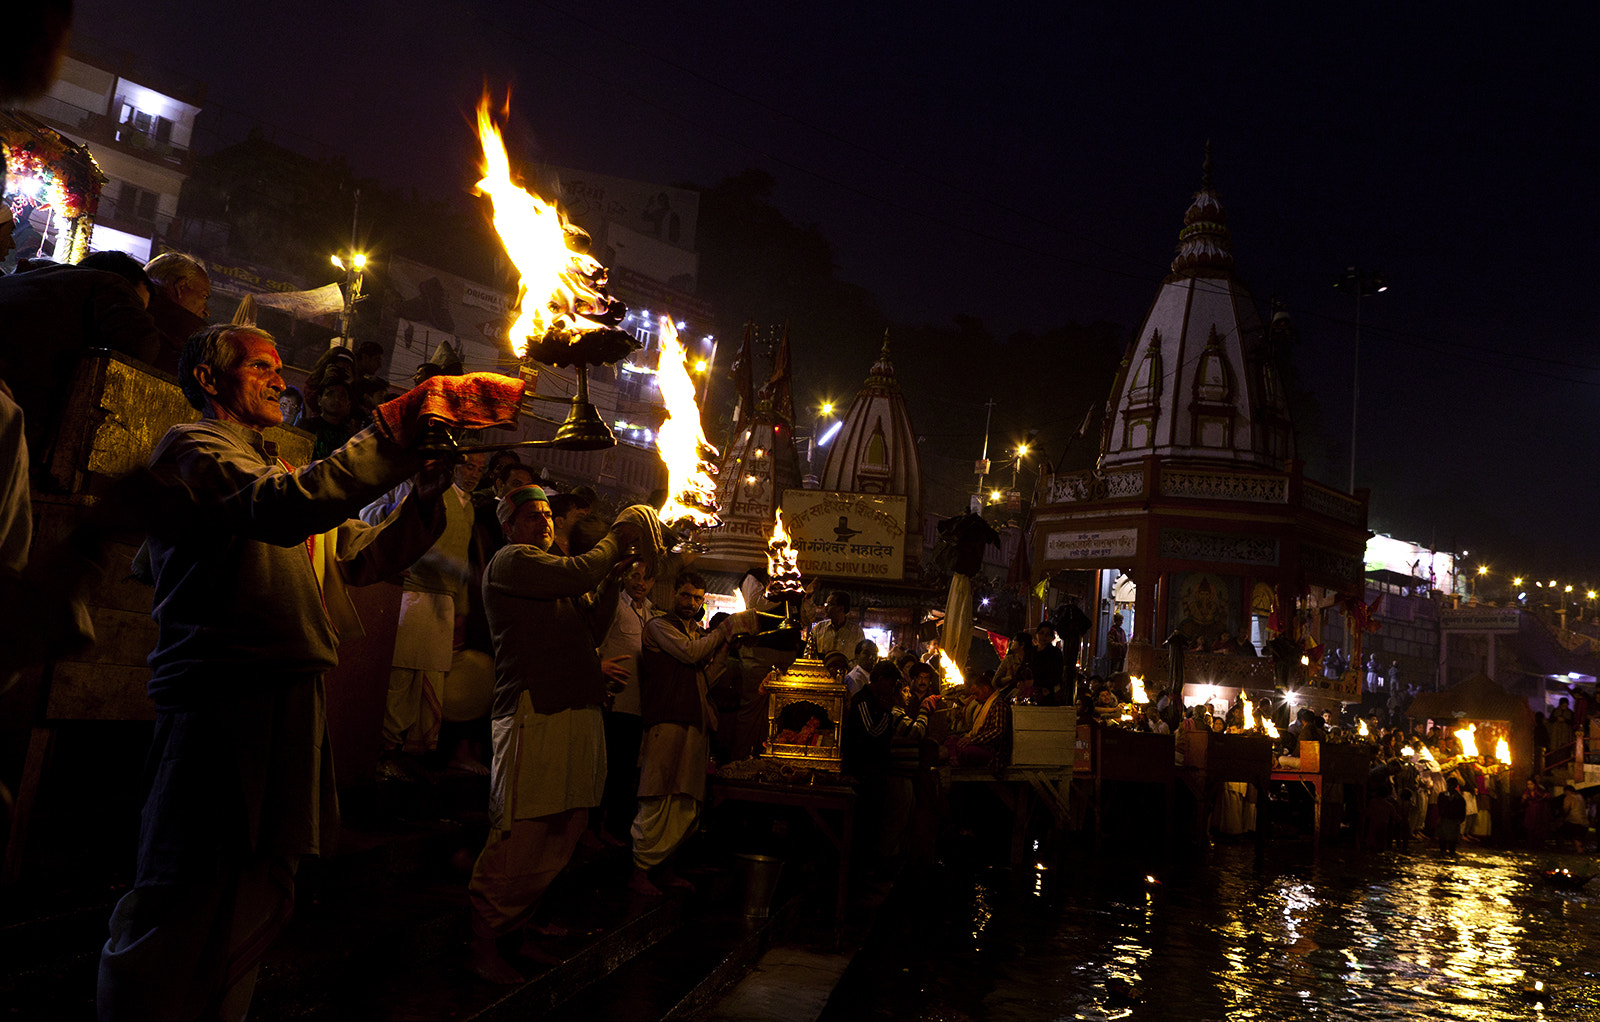 Photograph Ganga Aarti by shutterboy on 500px